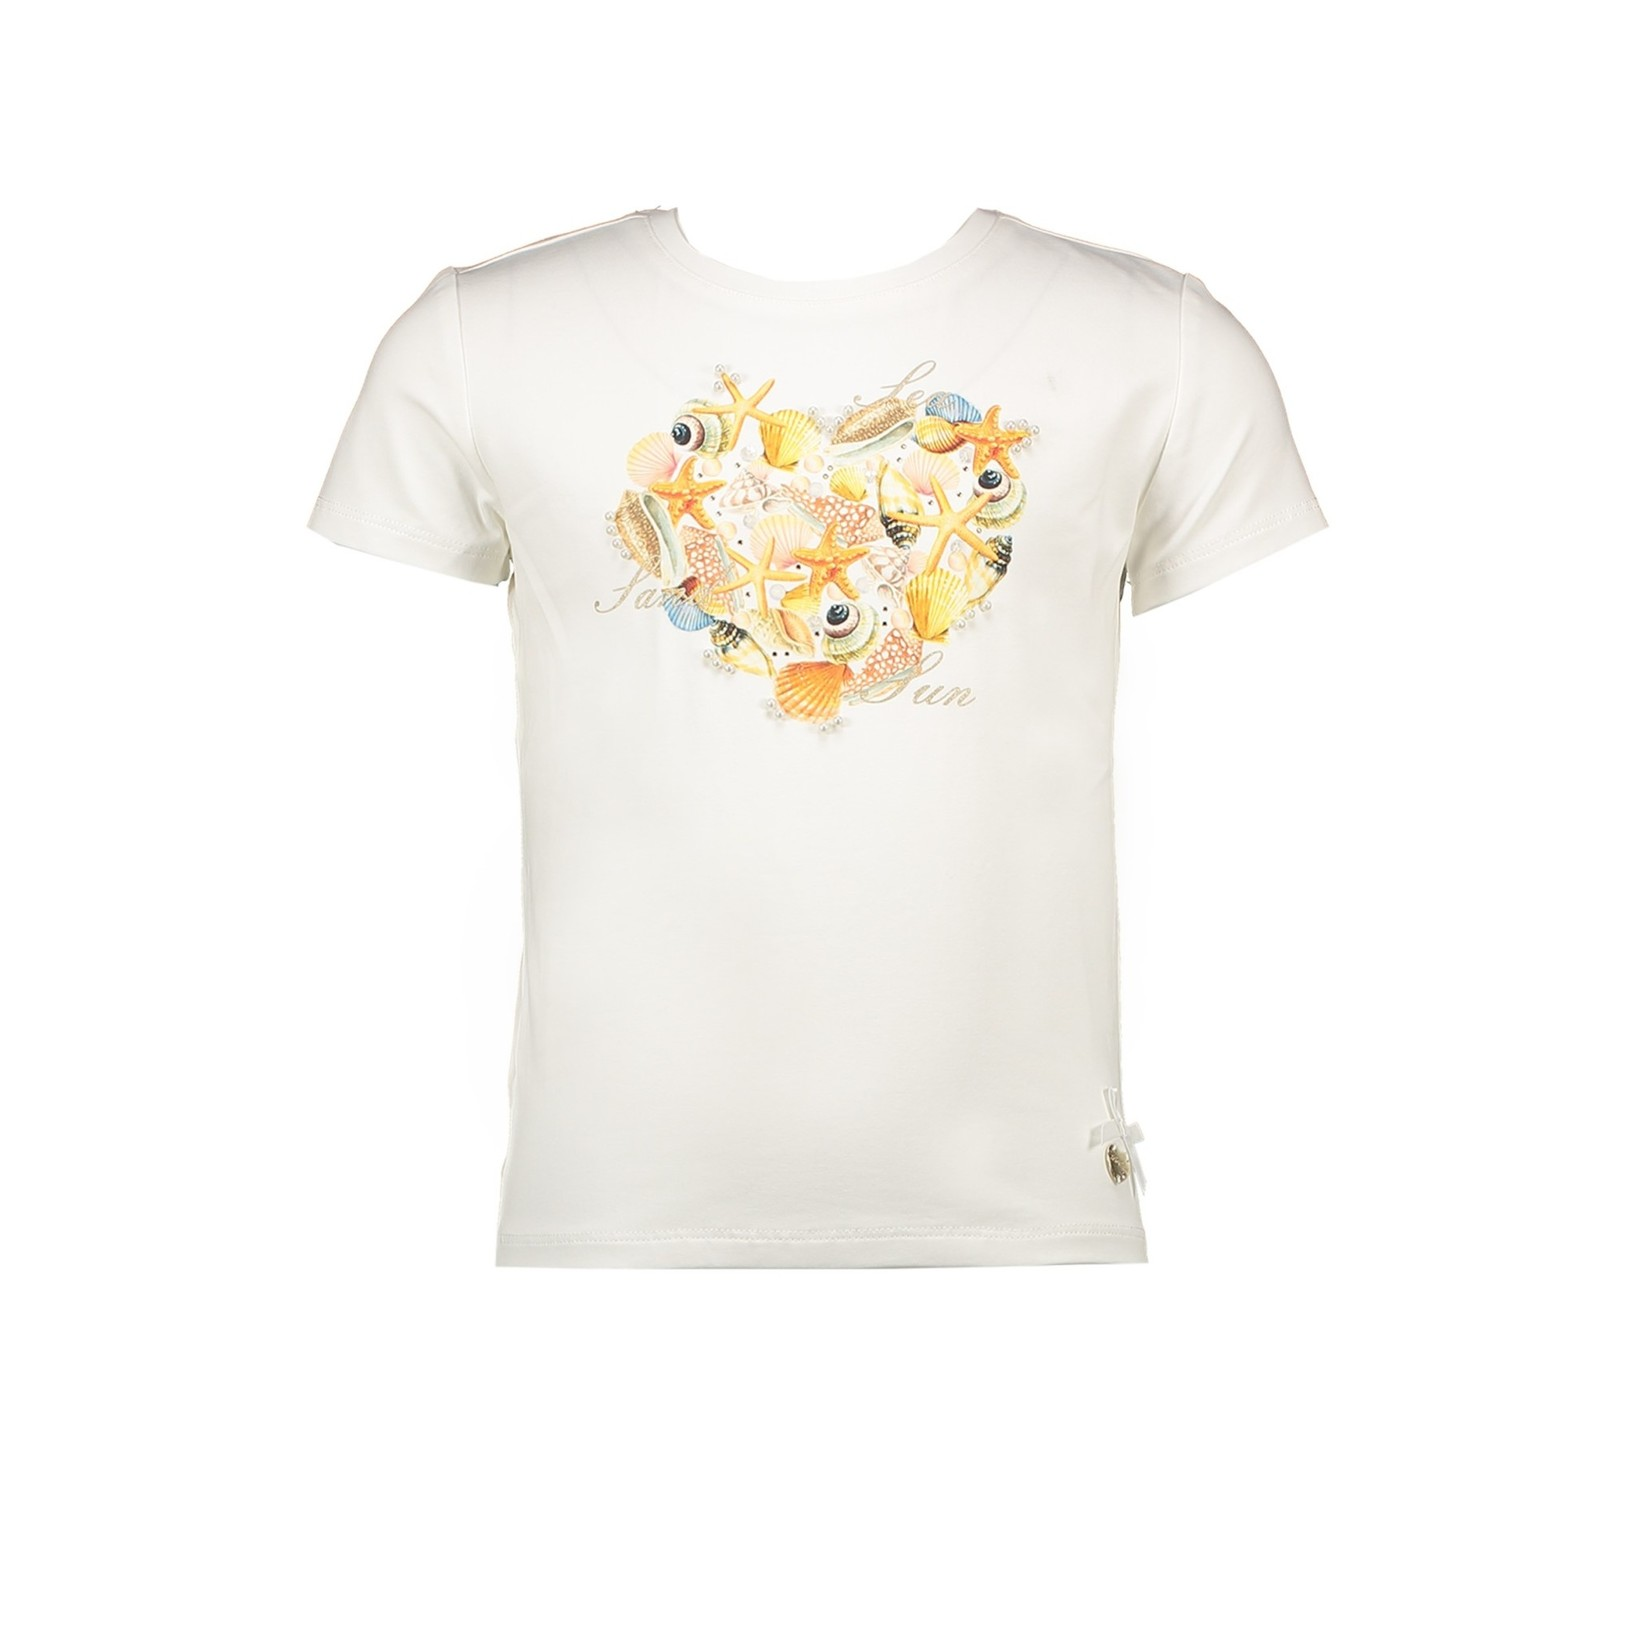 Le Chic T-shirt heart made of shells